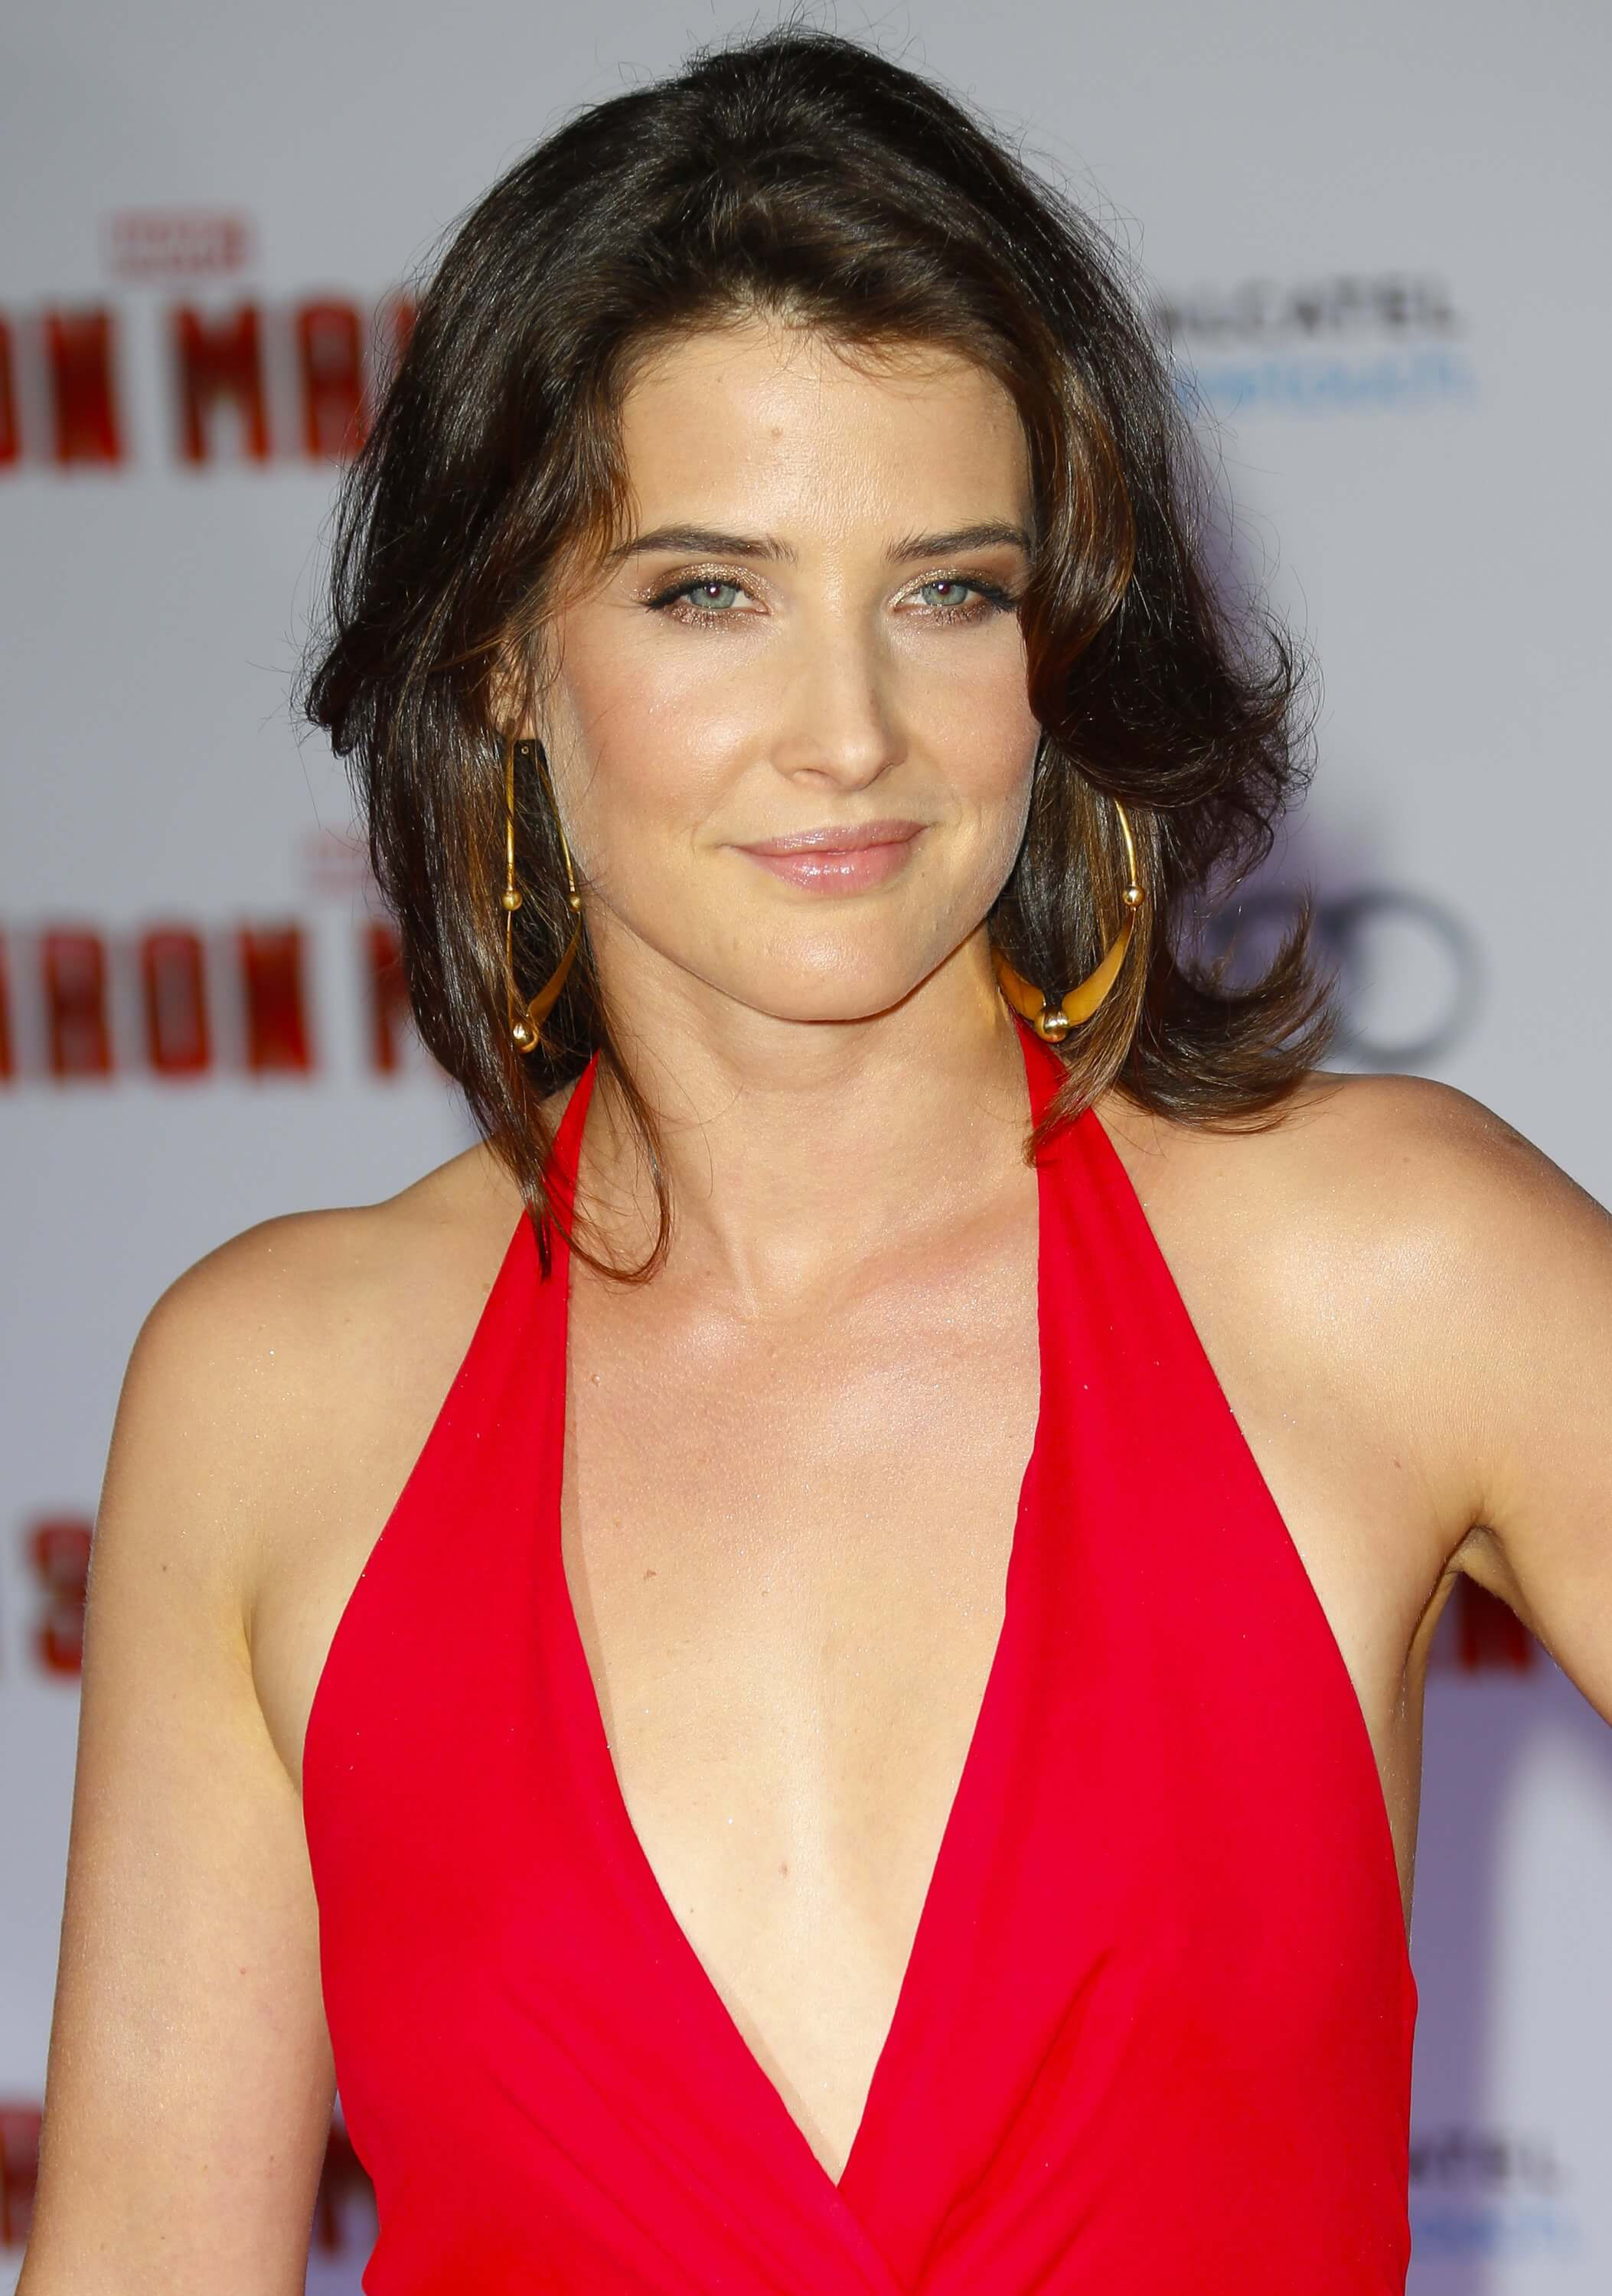 cobie smulders sexy cleavage photo